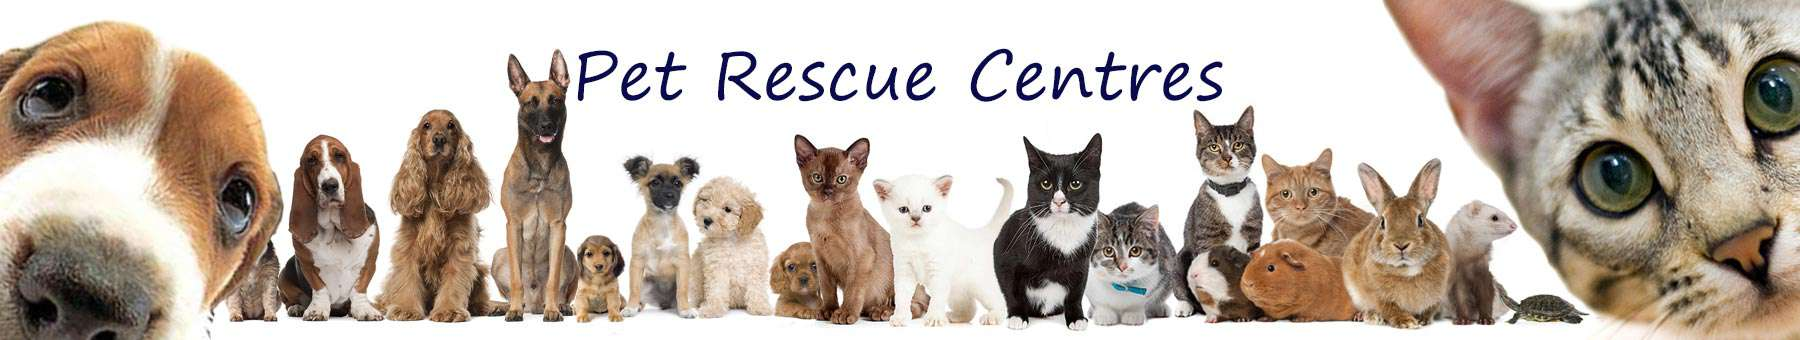 archive of animal rescue and rehoming organisations